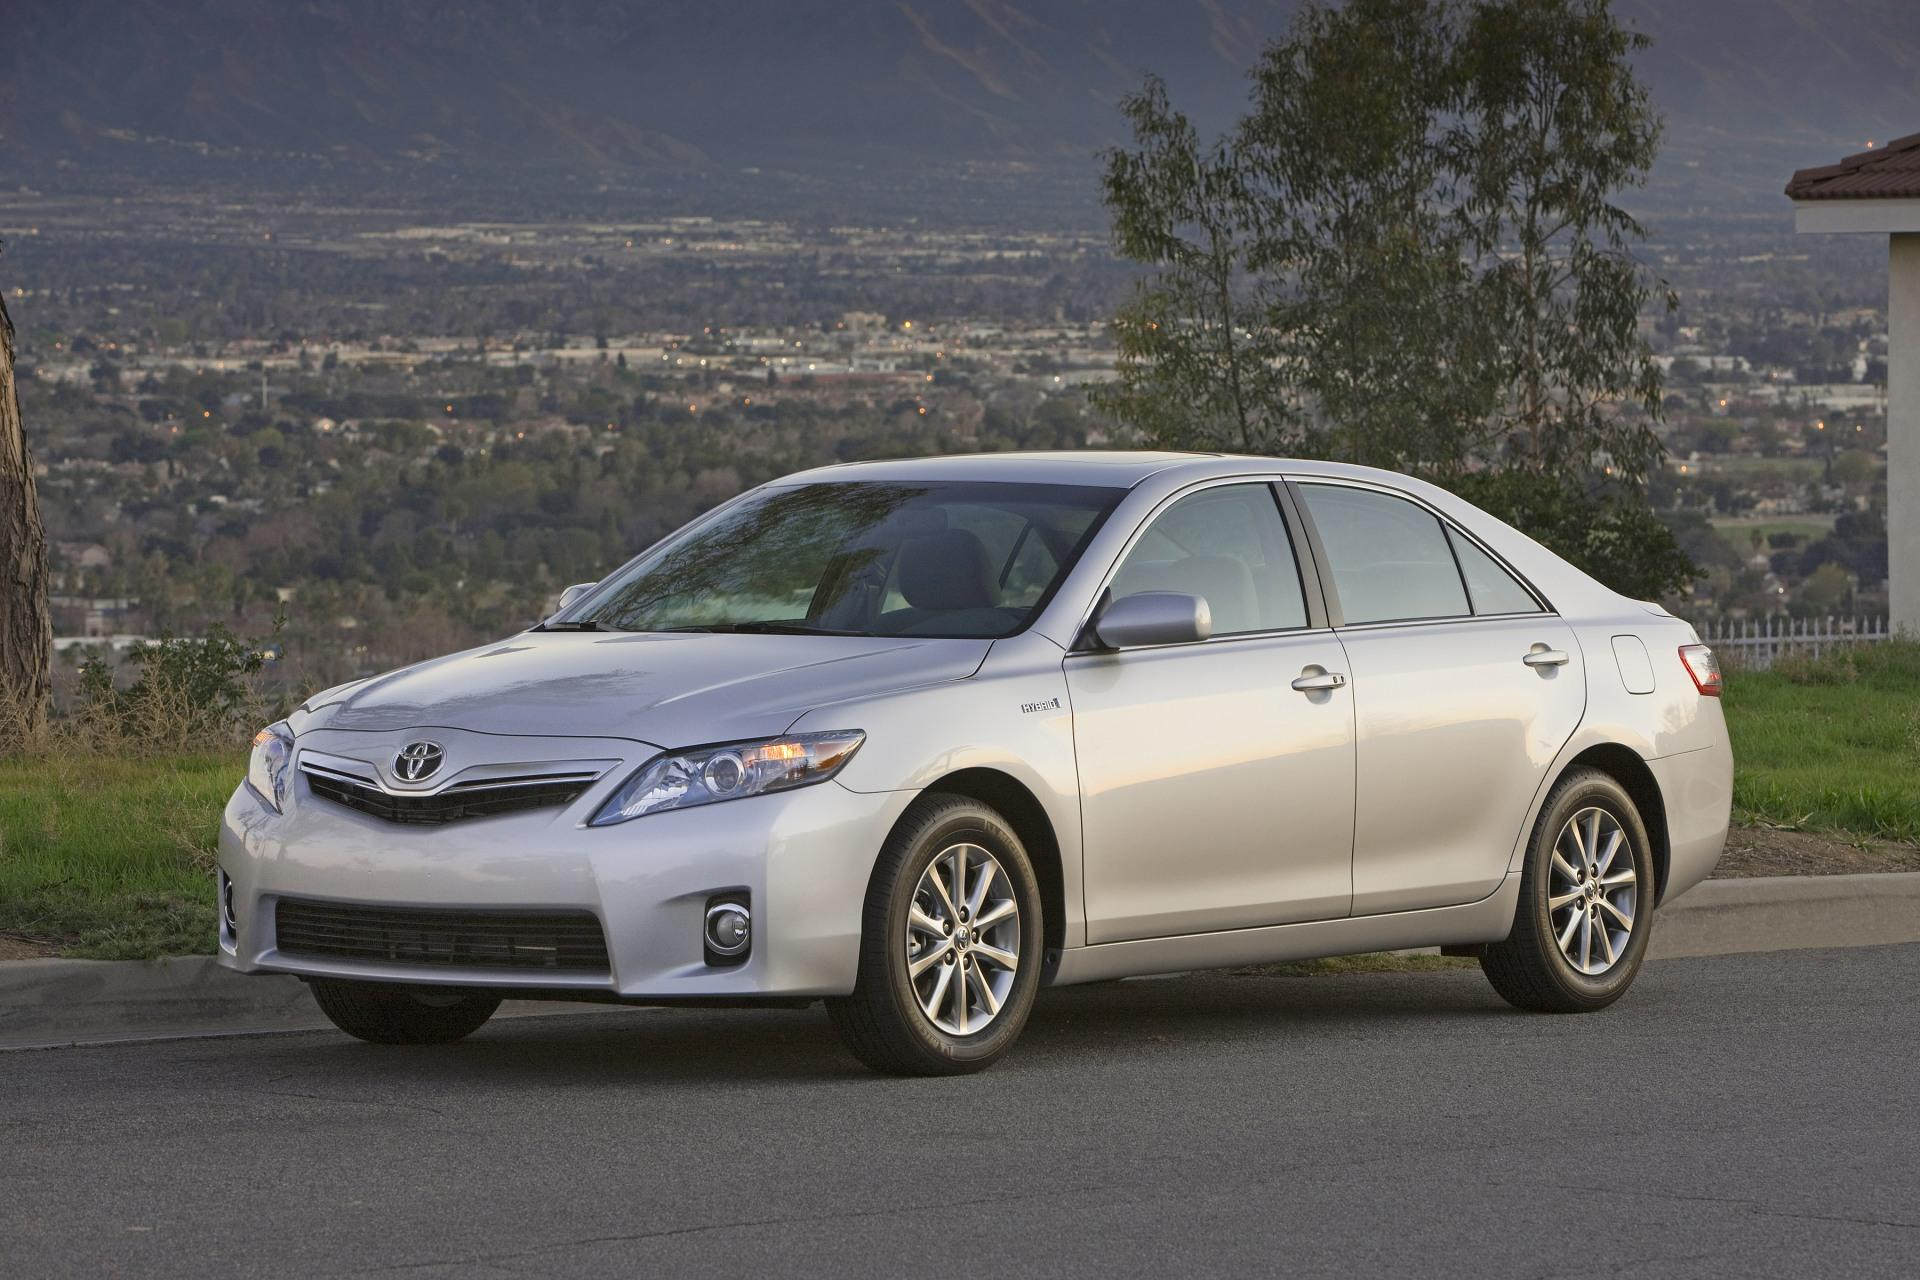 2011 Toyota Camry Hybrid News and Information